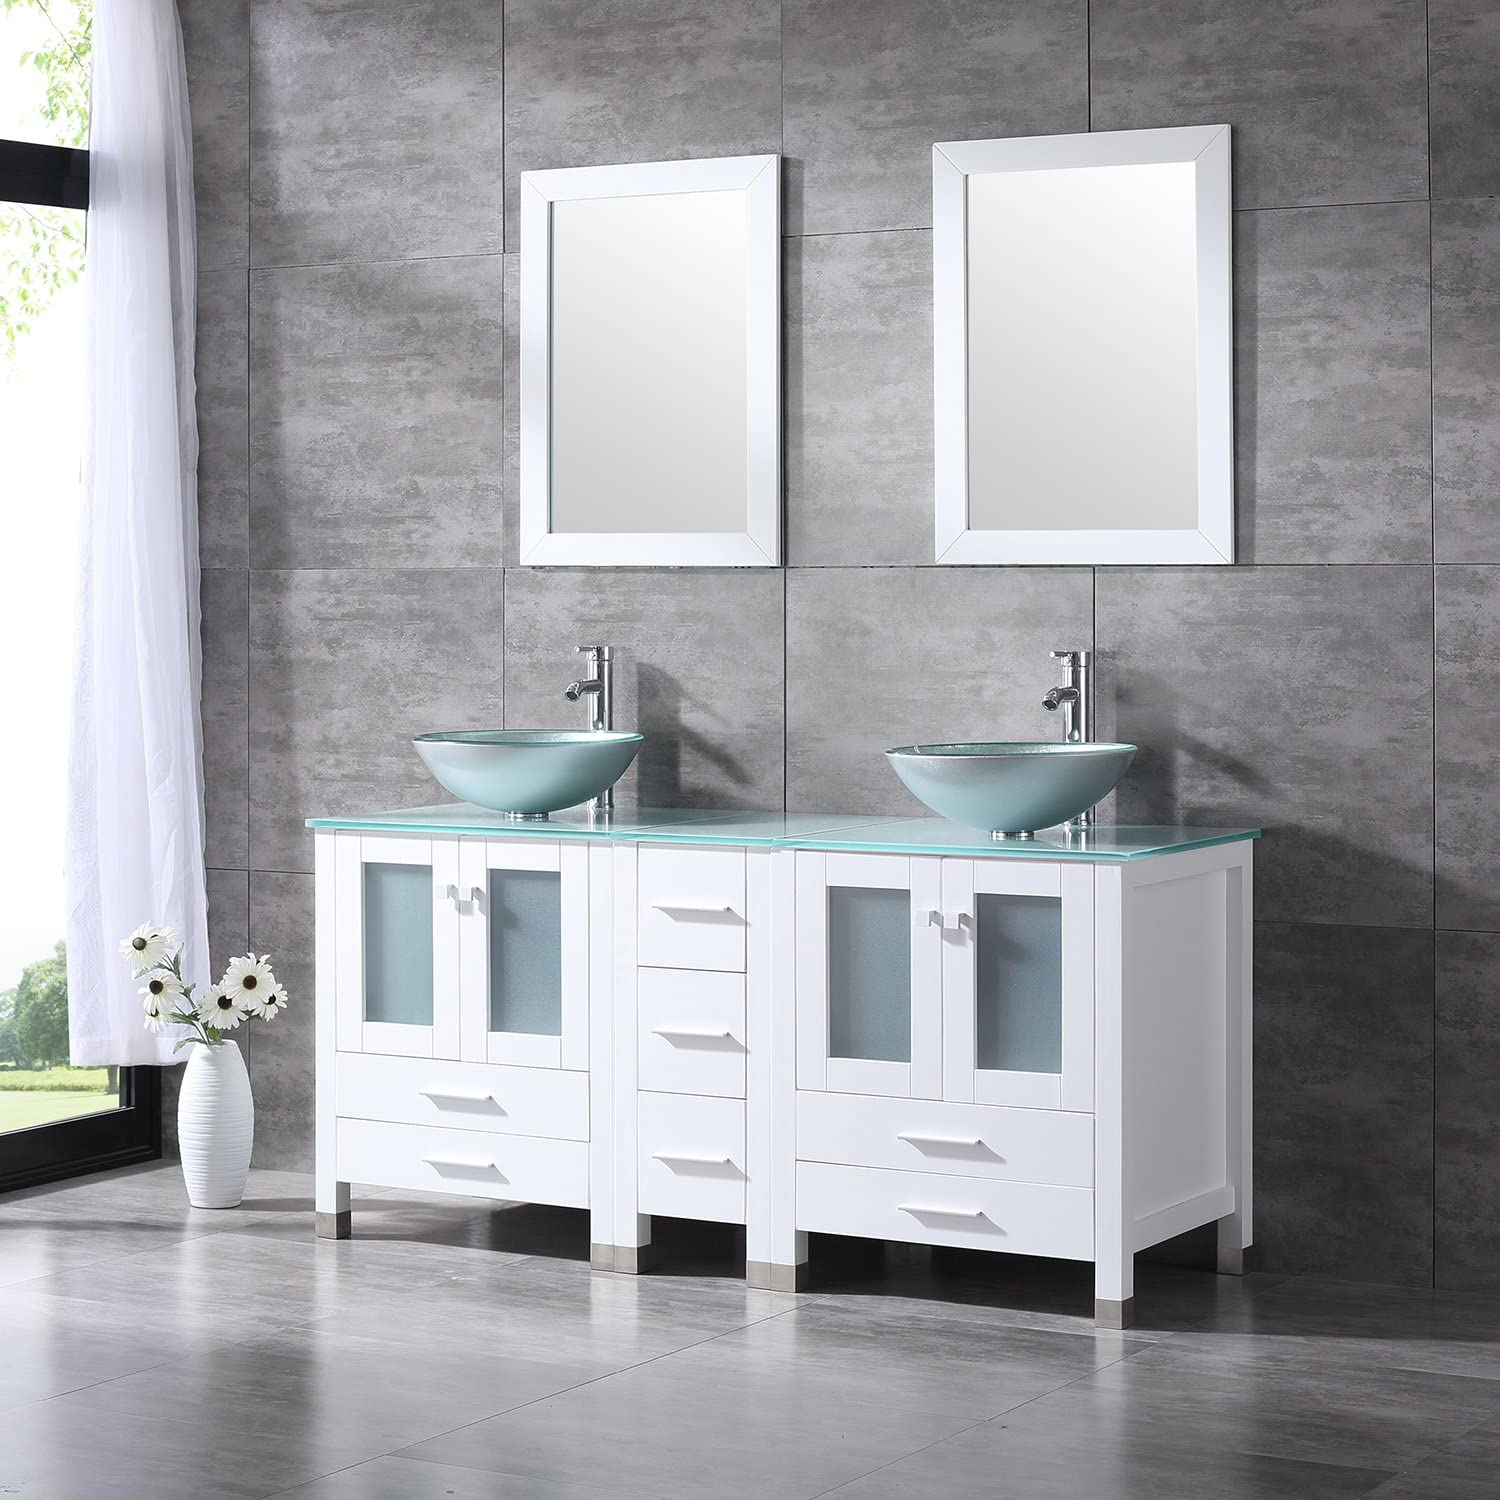 Buy Walcut 60inch White Bathroom Vanity With Sink Combo Solid Mdf Cabinet With Silver Green Double Glass Vessel Countertop Sink And Faucet Pop Up Drain Combo Double Mirror 60 Online In